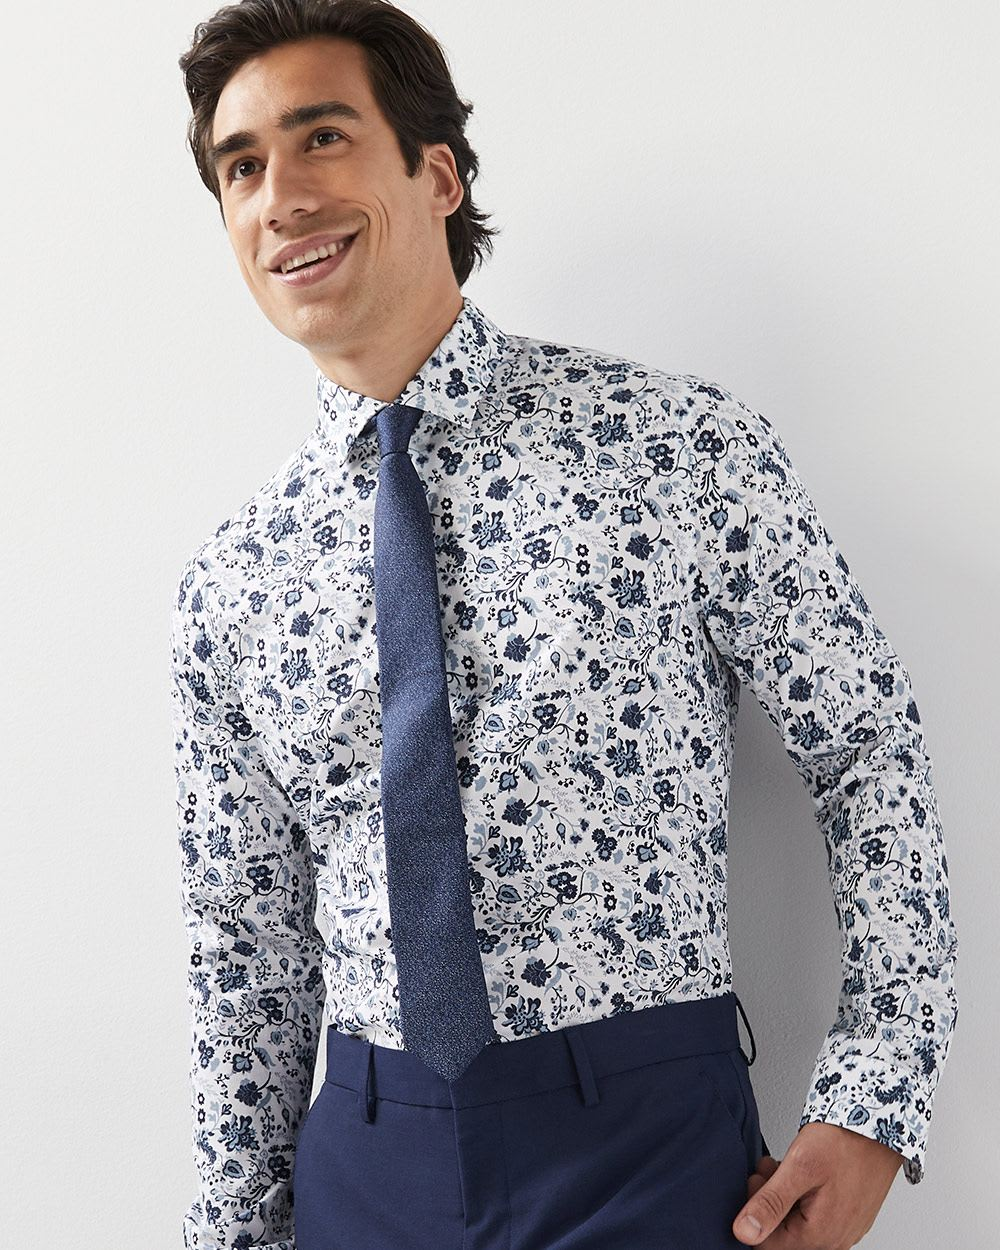 Athletic Fit Blue Floral Dress Shirt Rwco